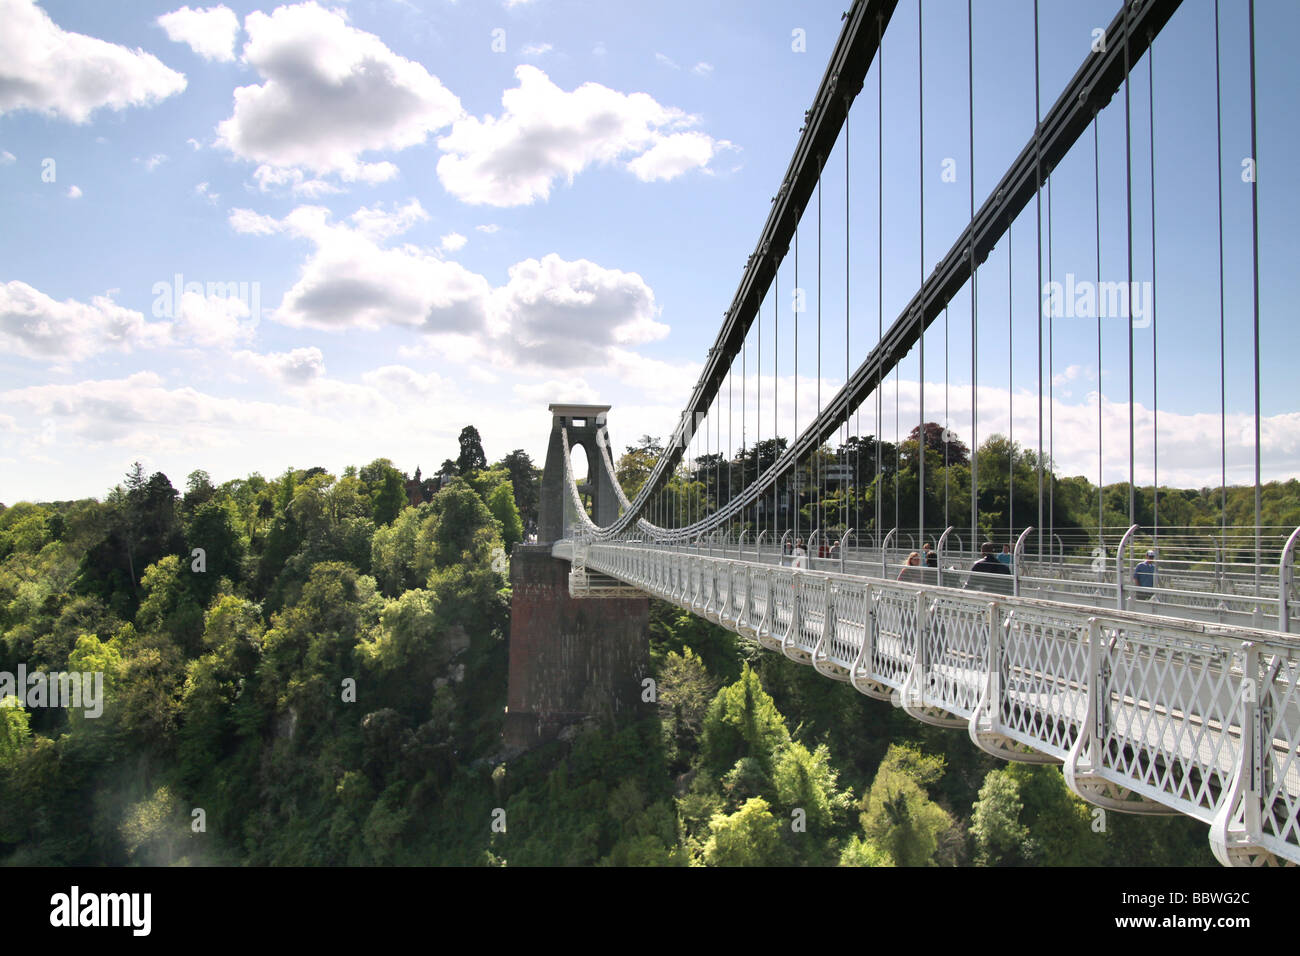 clifton suspension bridge - Stock Image